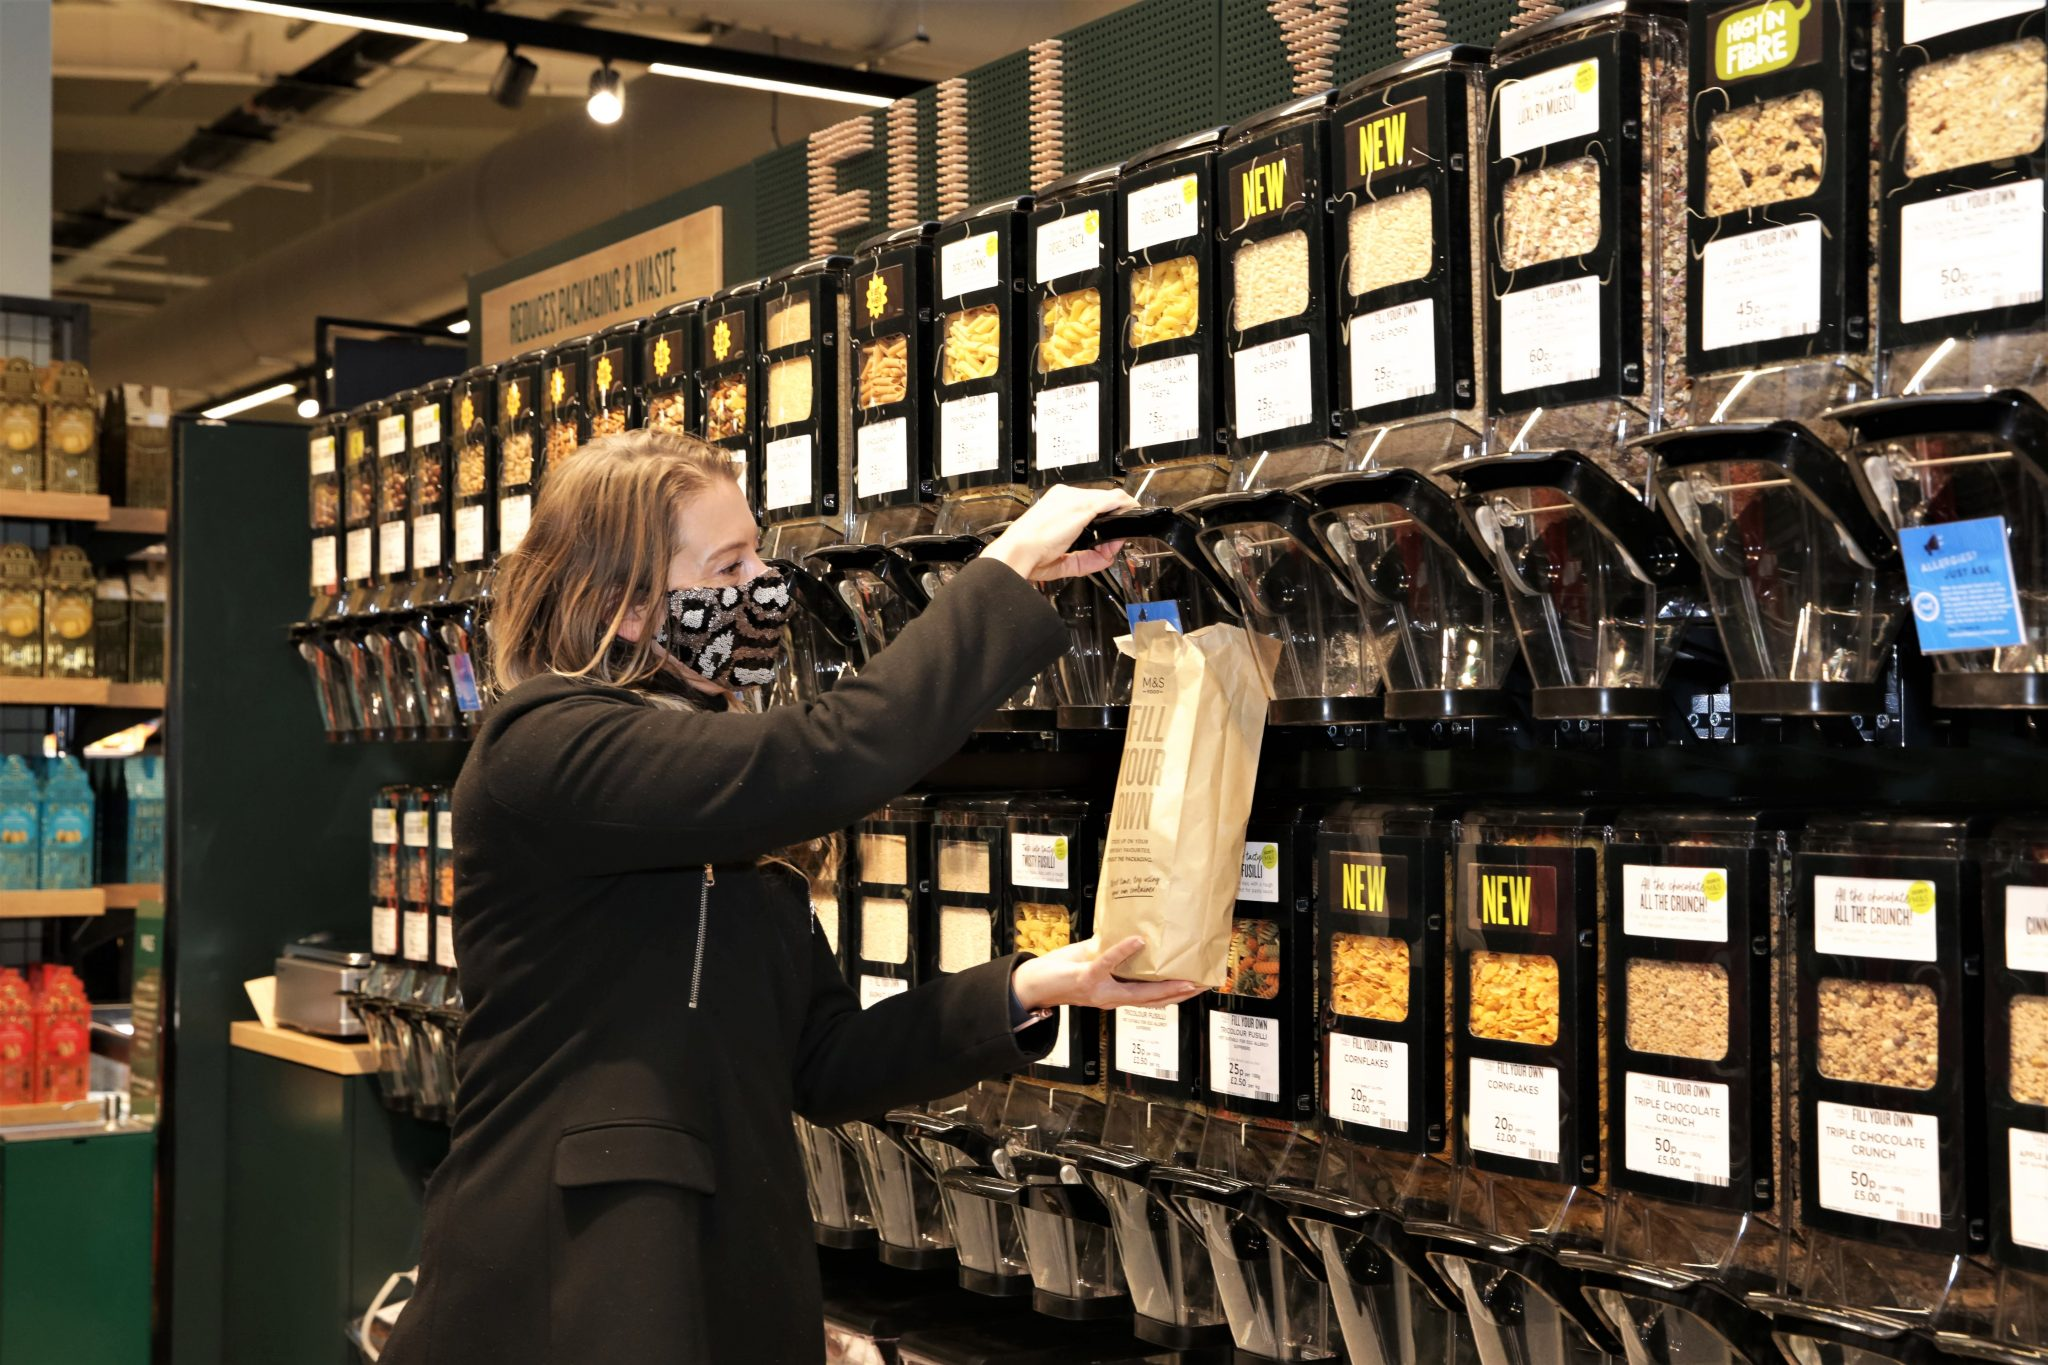 M&S 'Fill Your Own' concept arrives in third store